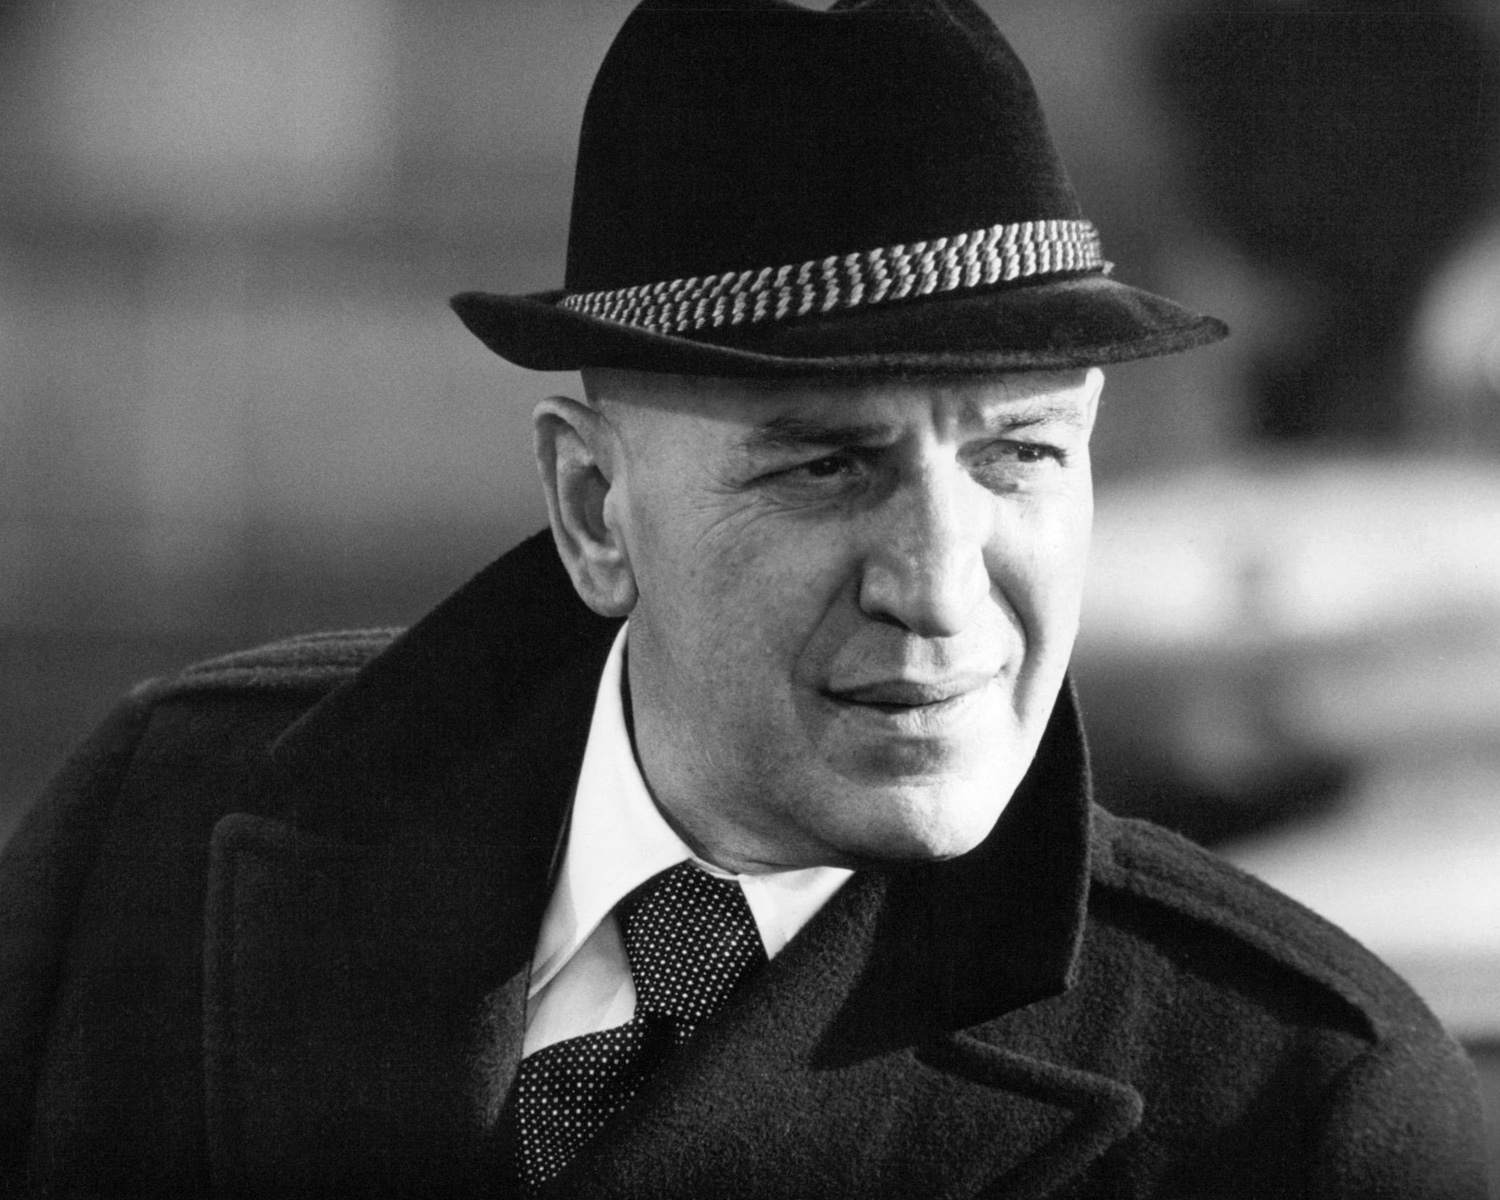 Biography of Telly Savalas, Actor Who Played Detective Kojak